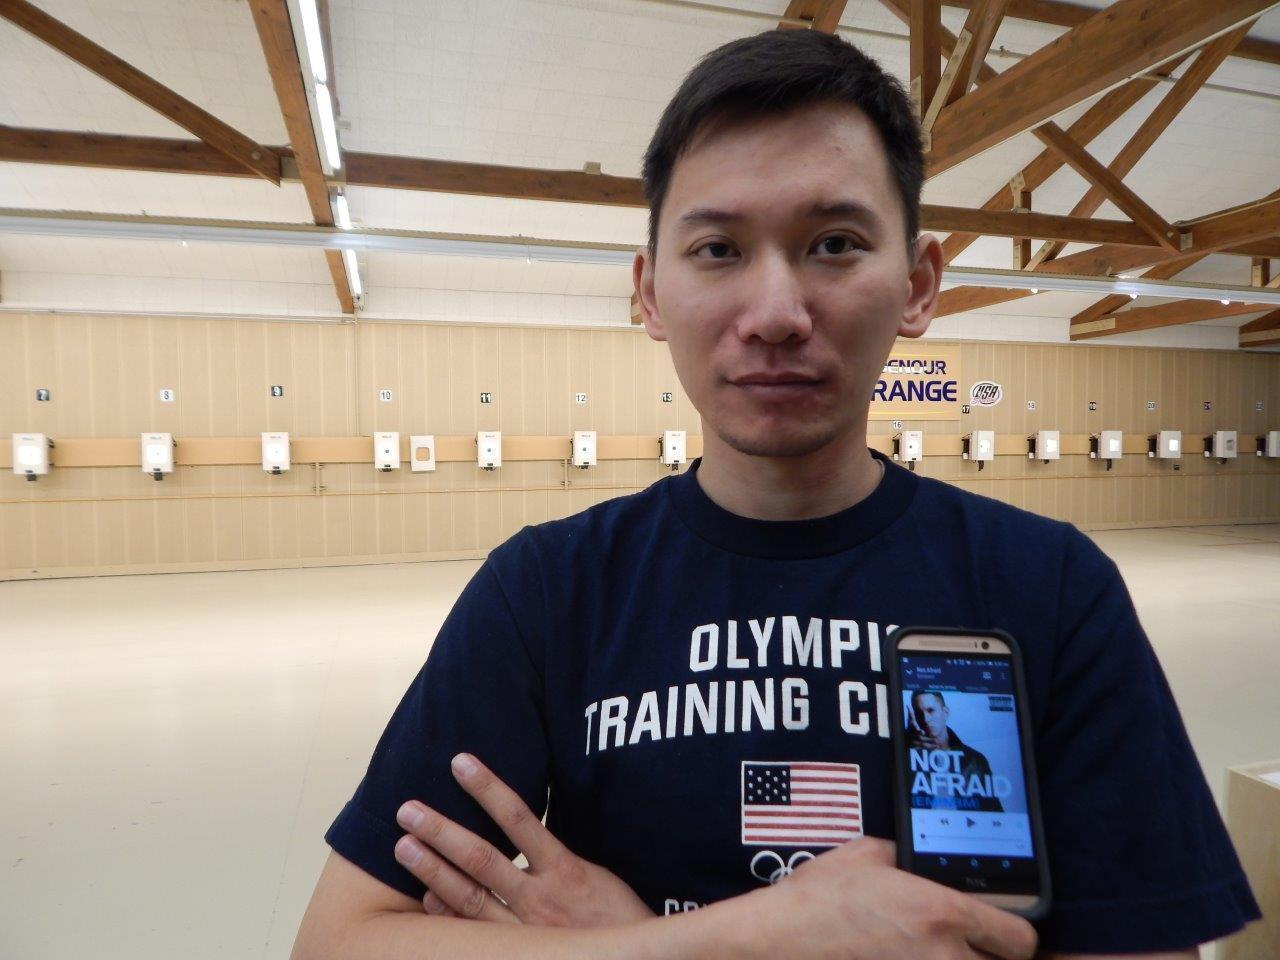 In this July 26, 2016, image provided by USA Shooting, Jay Shi poses at a shooting range in Colorado Springs, Colo., with Eminem on his phone. The Associated Press asked several Olympians what is the most important thing that youre packing in your bag for